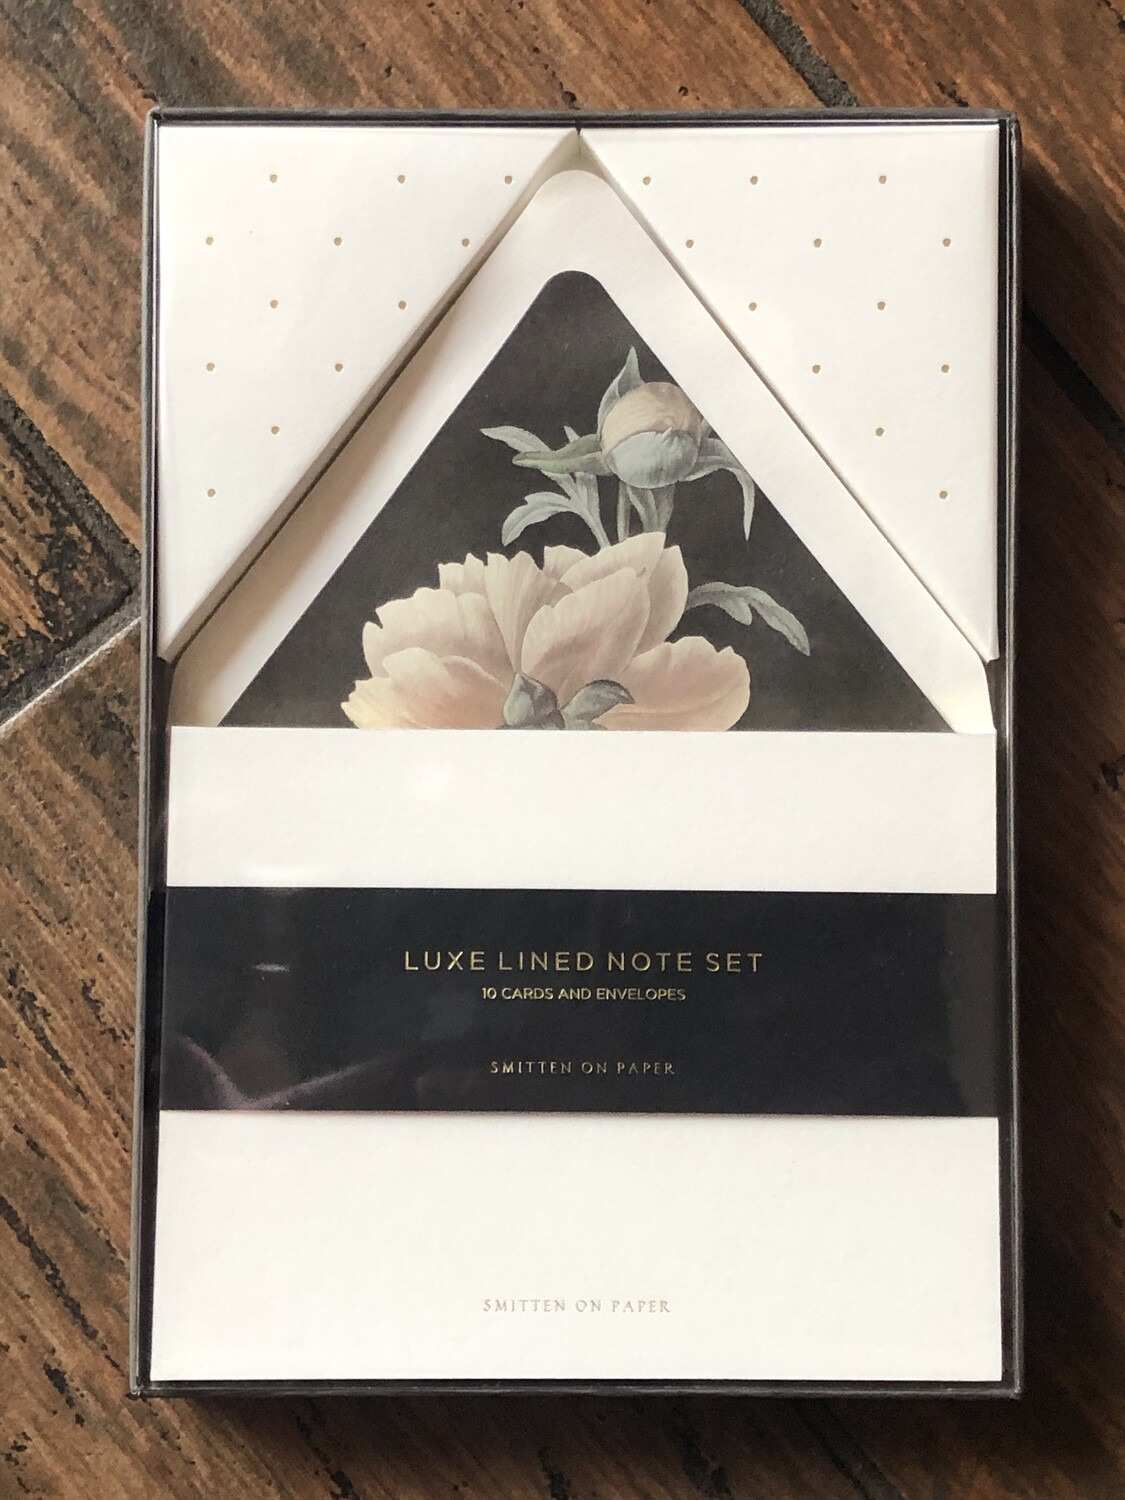 Smitten on Paper Luxe Lined Note Set